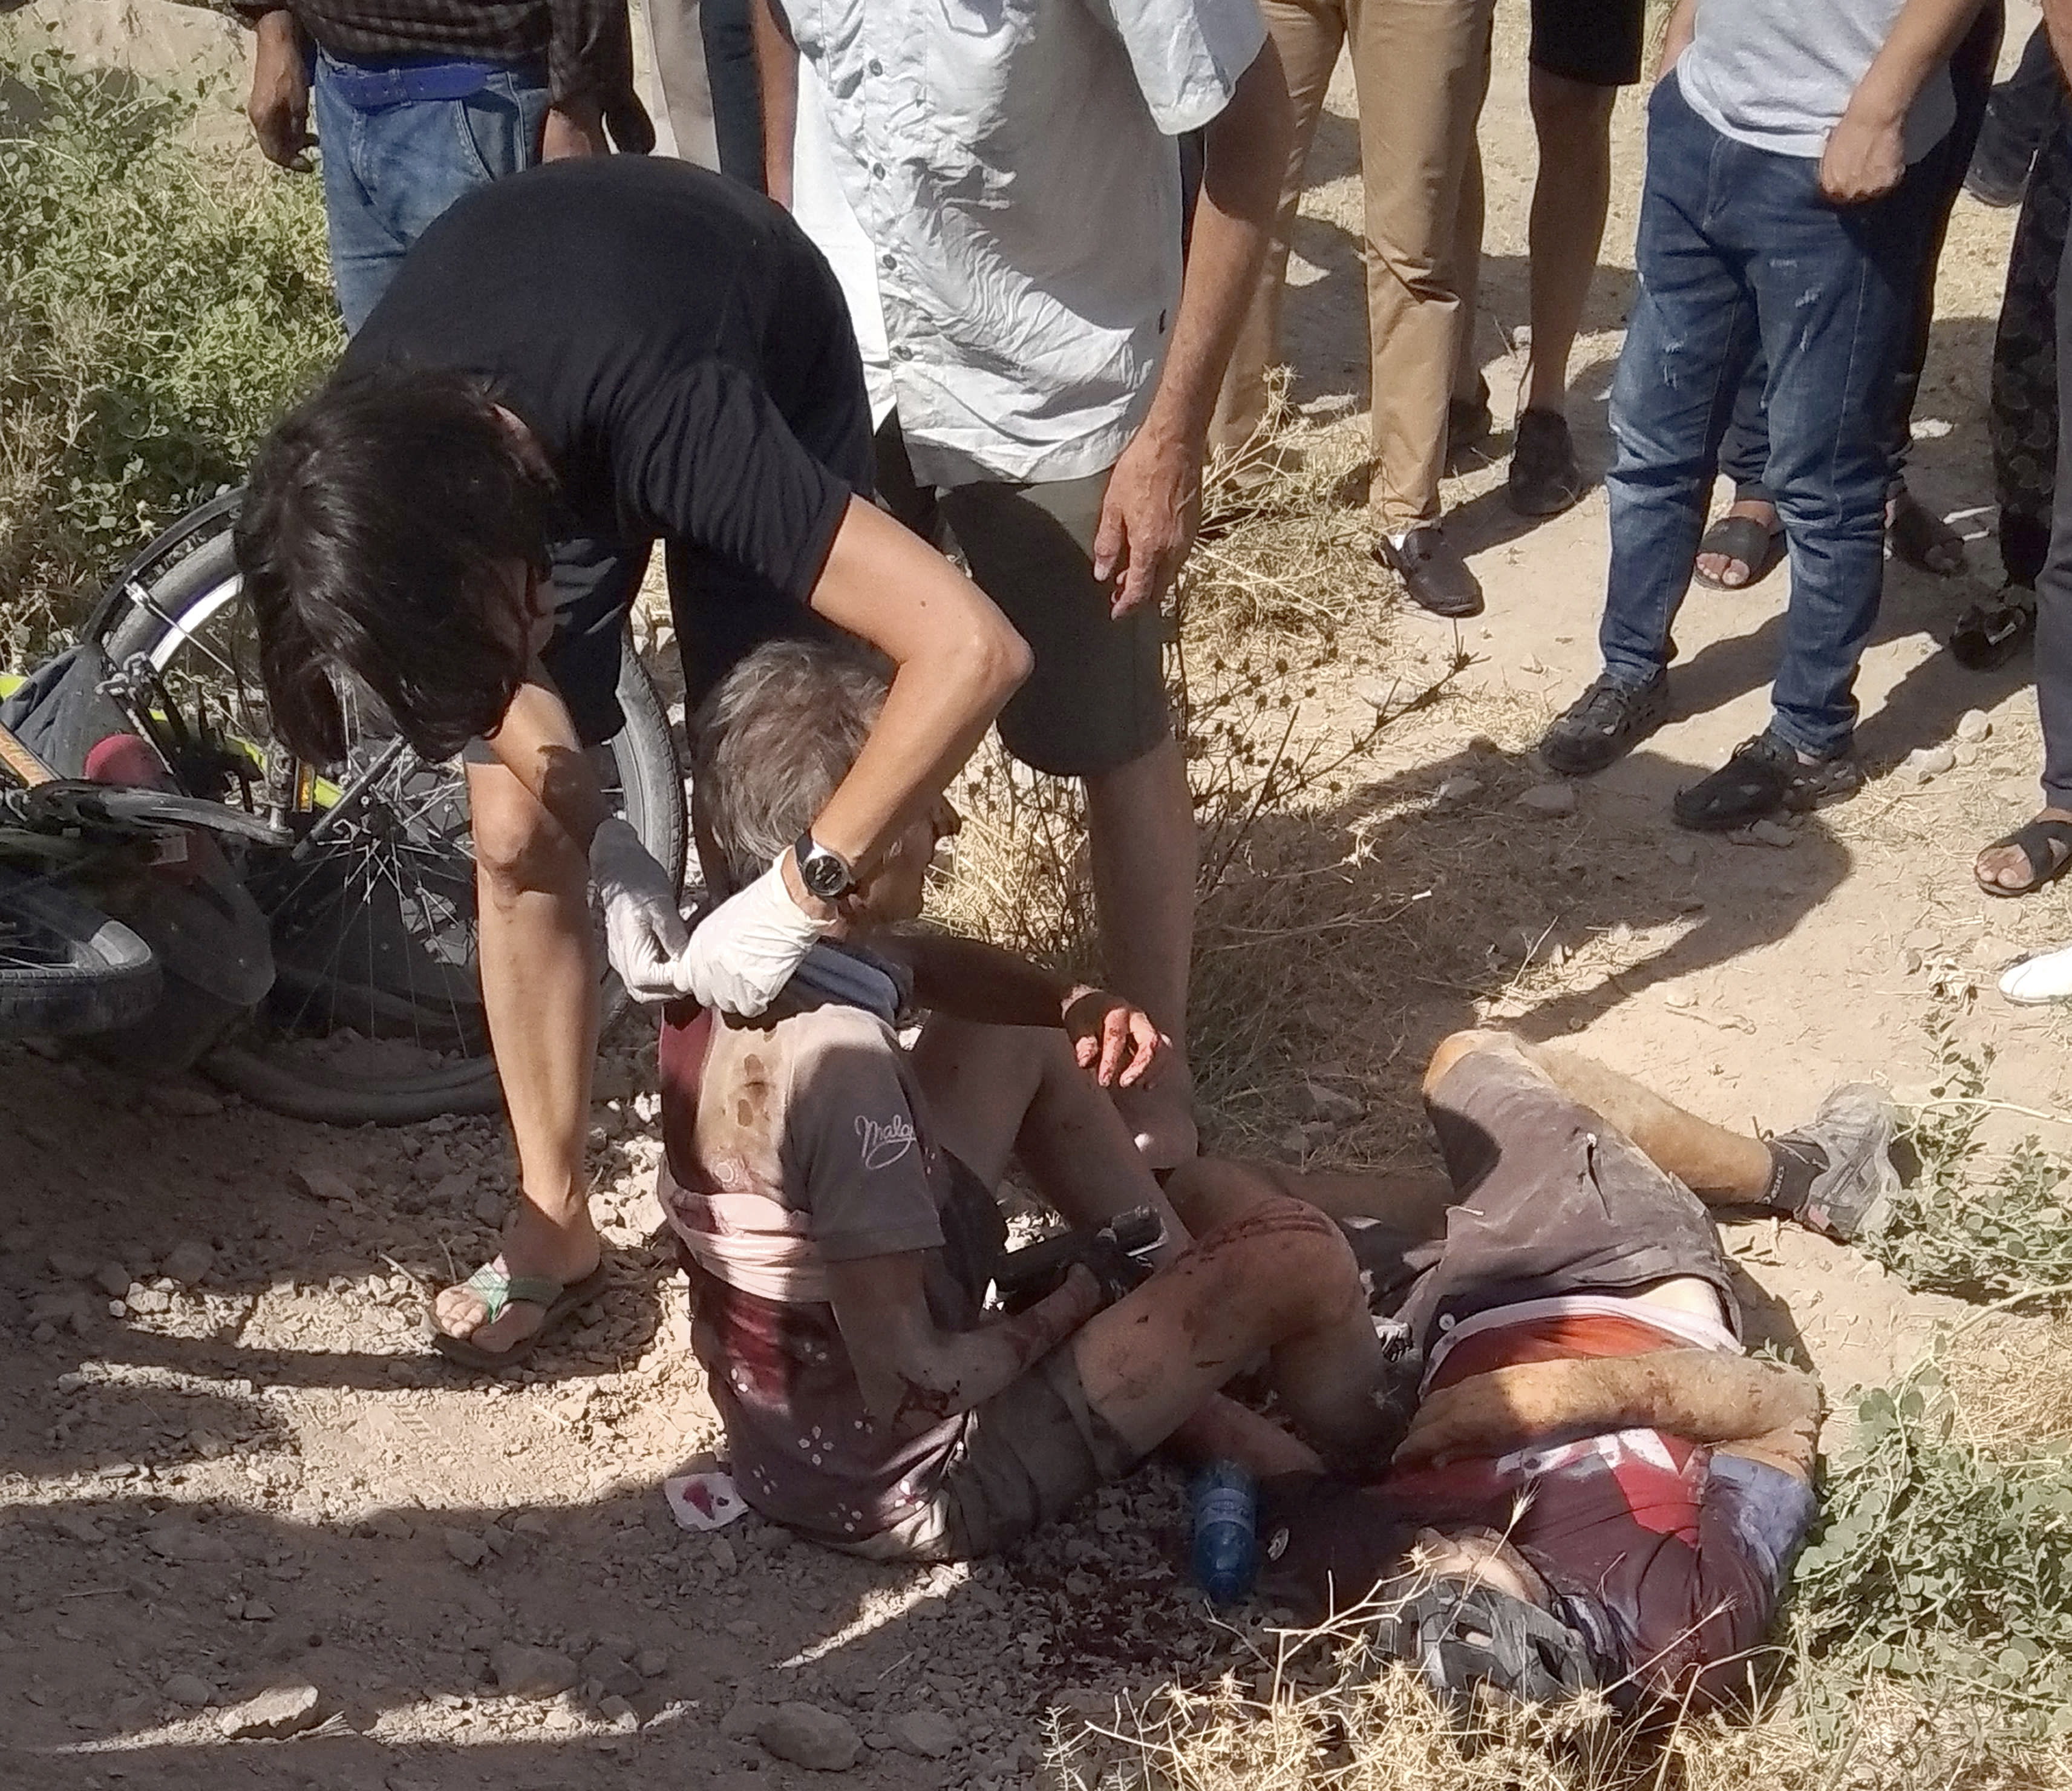 In this photo taken on Sunday, July 29, 2018, a woman helps a wounded cyclist, where the four tourists were killed when a car rammed into a group of foreigners on bicycles south of the capital of Dushanbe, Tajikistan. The Islamic State group on Tuesday claimed responsibility for a car-and-knife attack on Western tourists cycling in Tajikistan that killed two Americans and two Europeans. (AP Photo/Zuly Rahmatova)